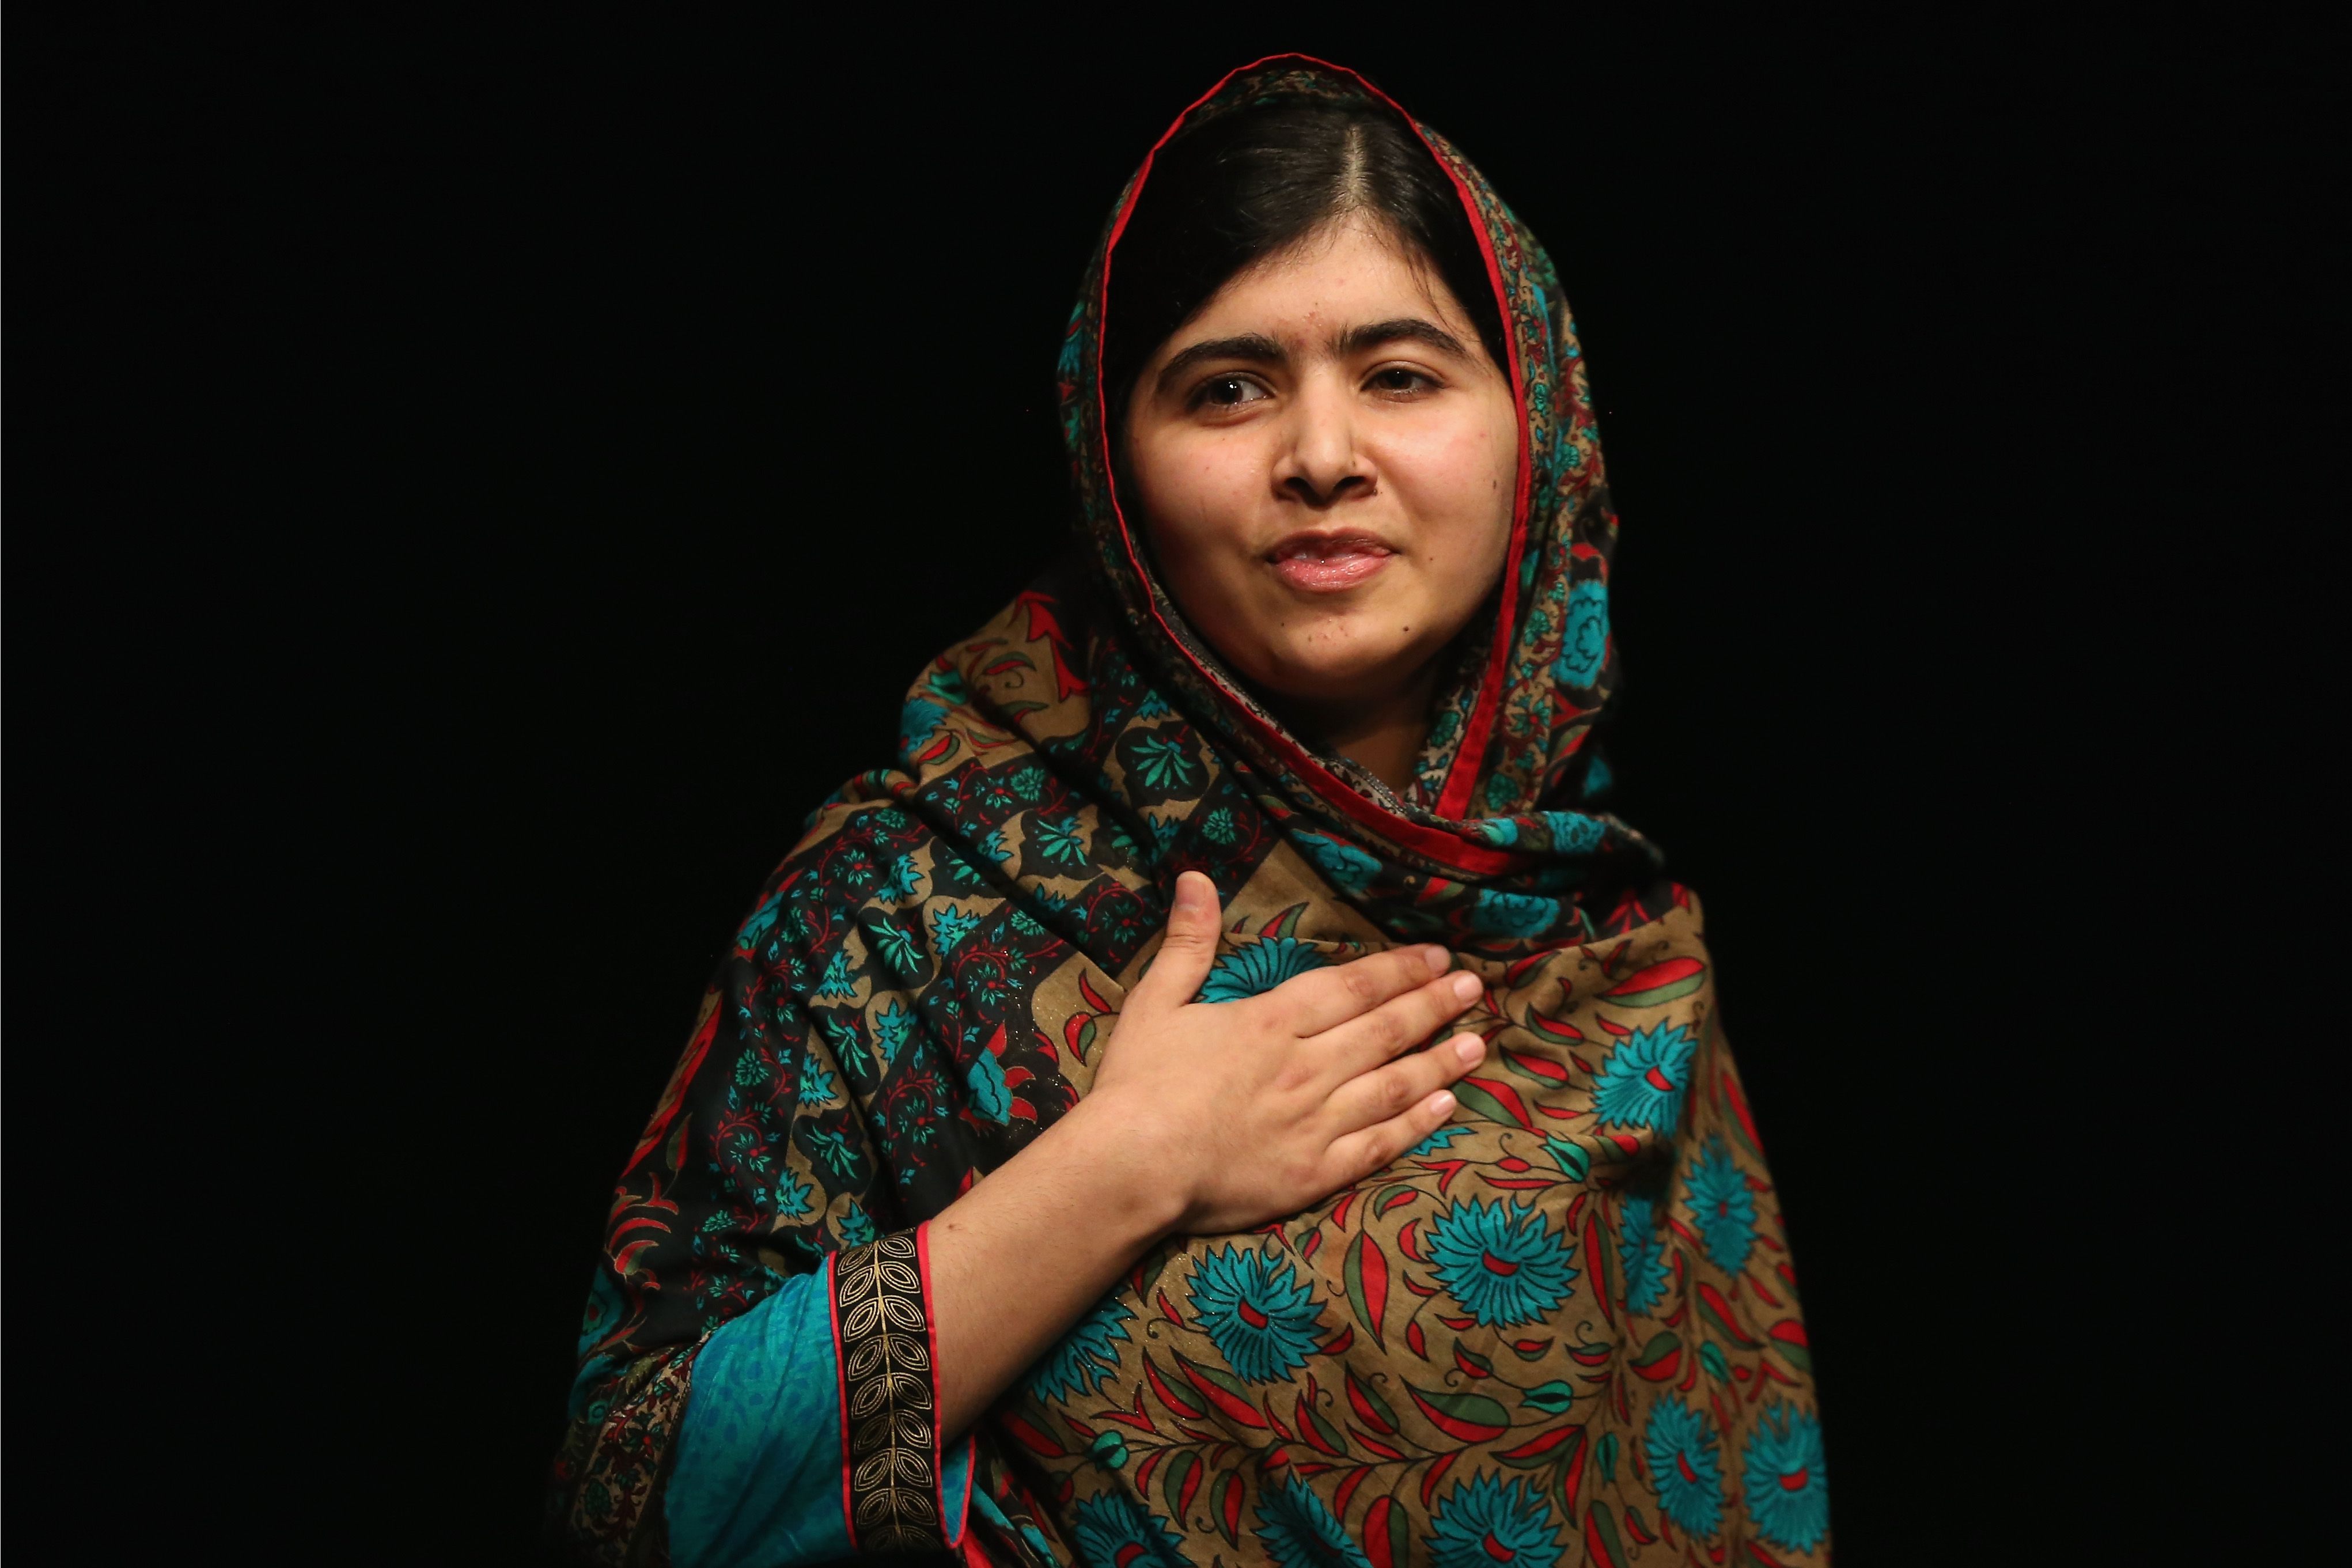 I Am Malala Quotes Malala Yousafzai Responds To Trump's Executive Order For Extreme